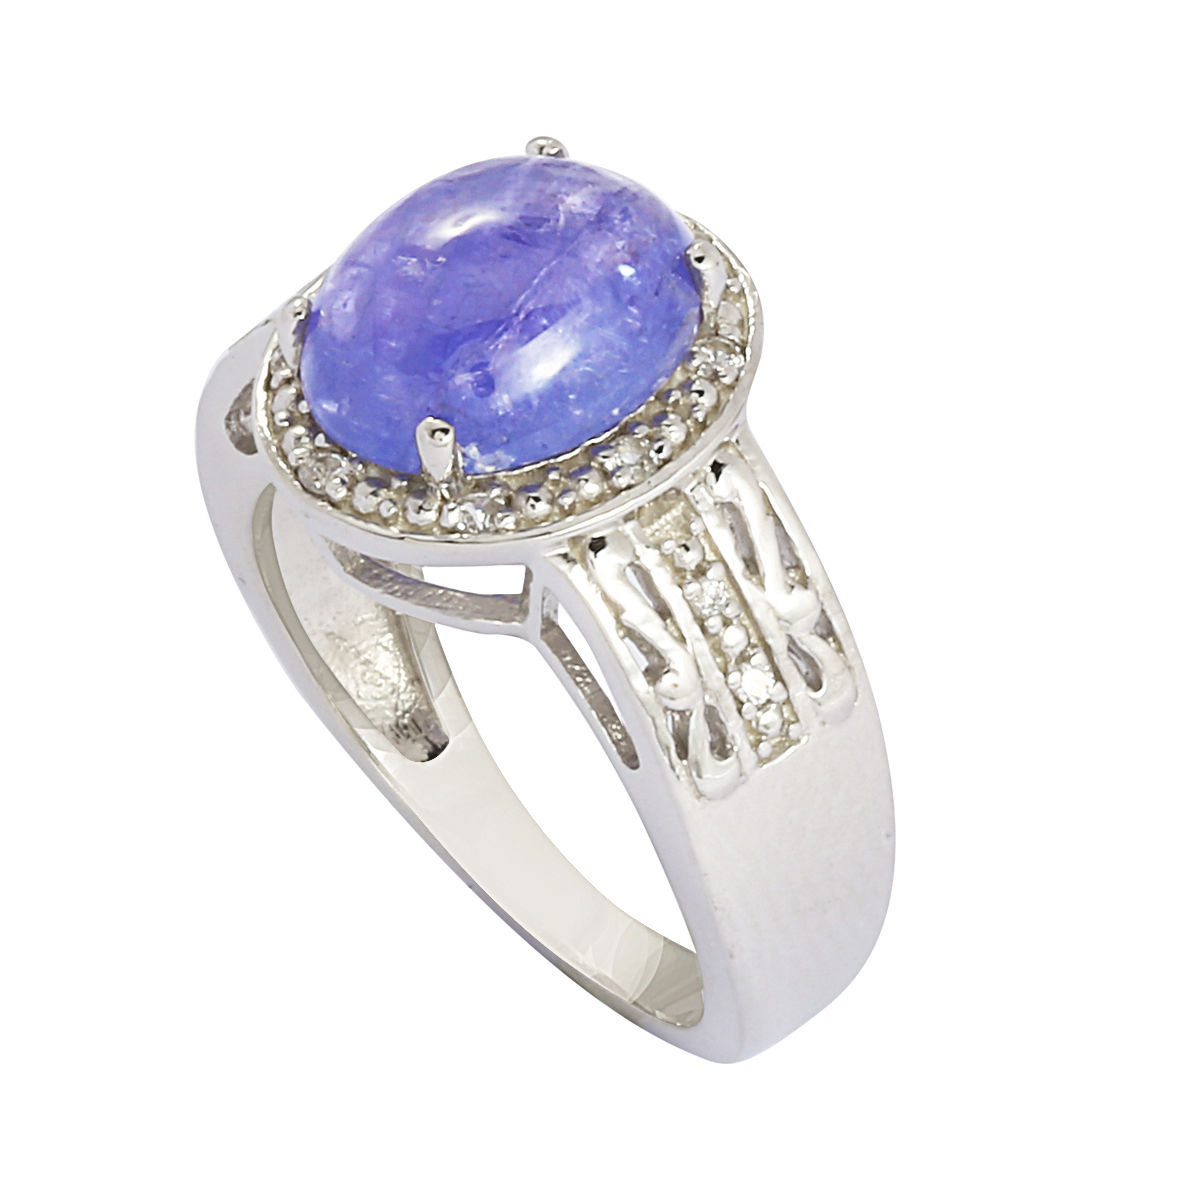 New 4.20 Ct Tanzainte Stone 925 Sterling Silver Jewelry Ring Sz 8 SHRI0567